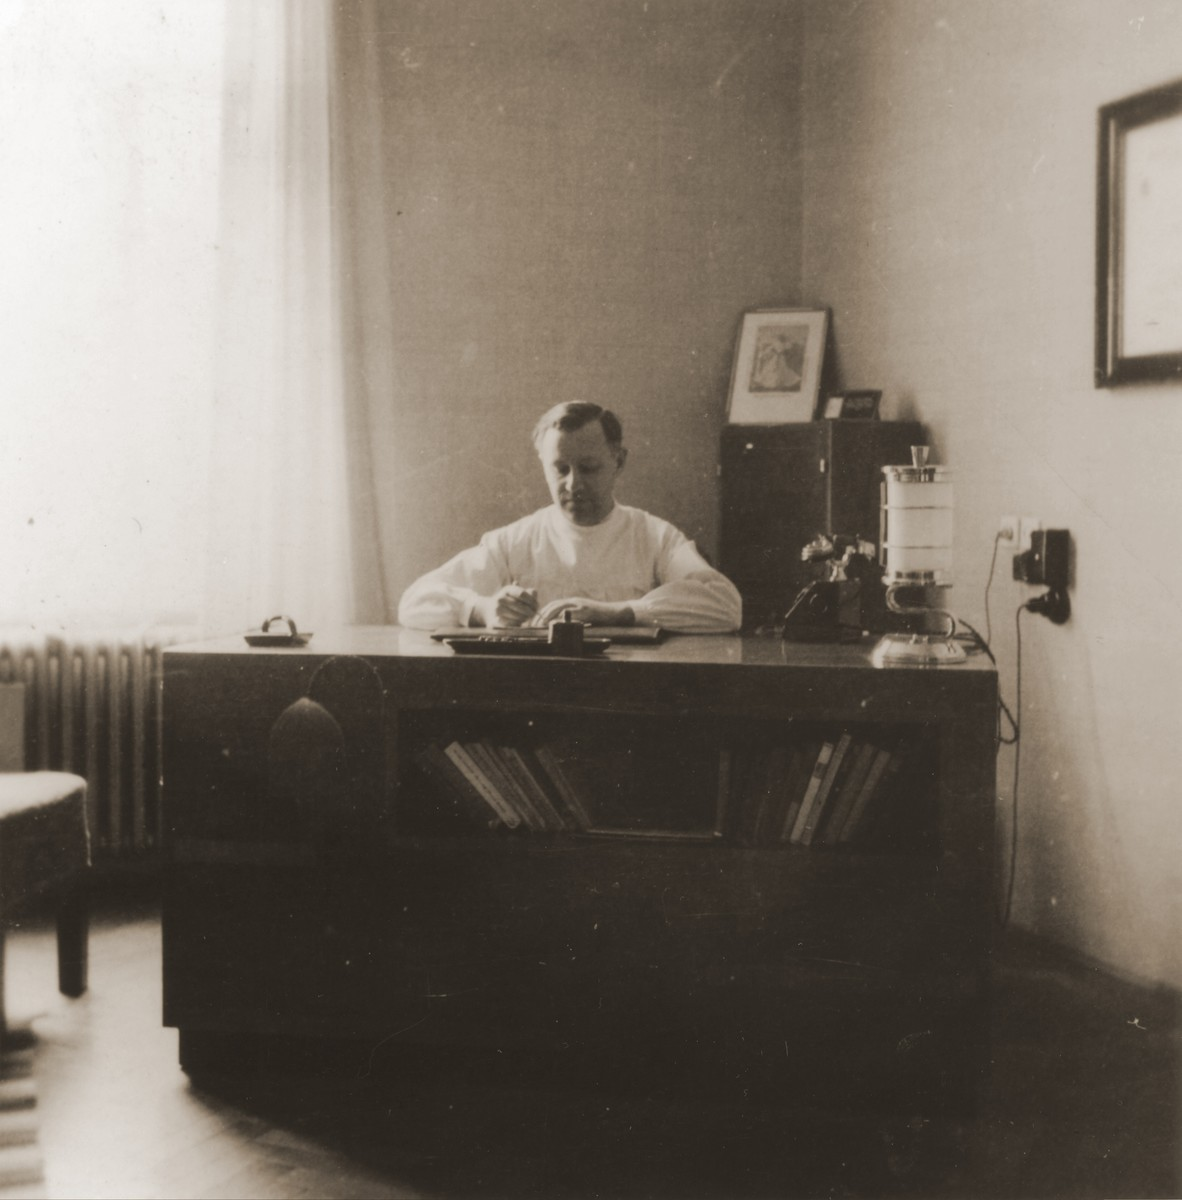 The Jewish obstetrician, Dr. László Halmos, works at his office on Vodna Street in Kosice.